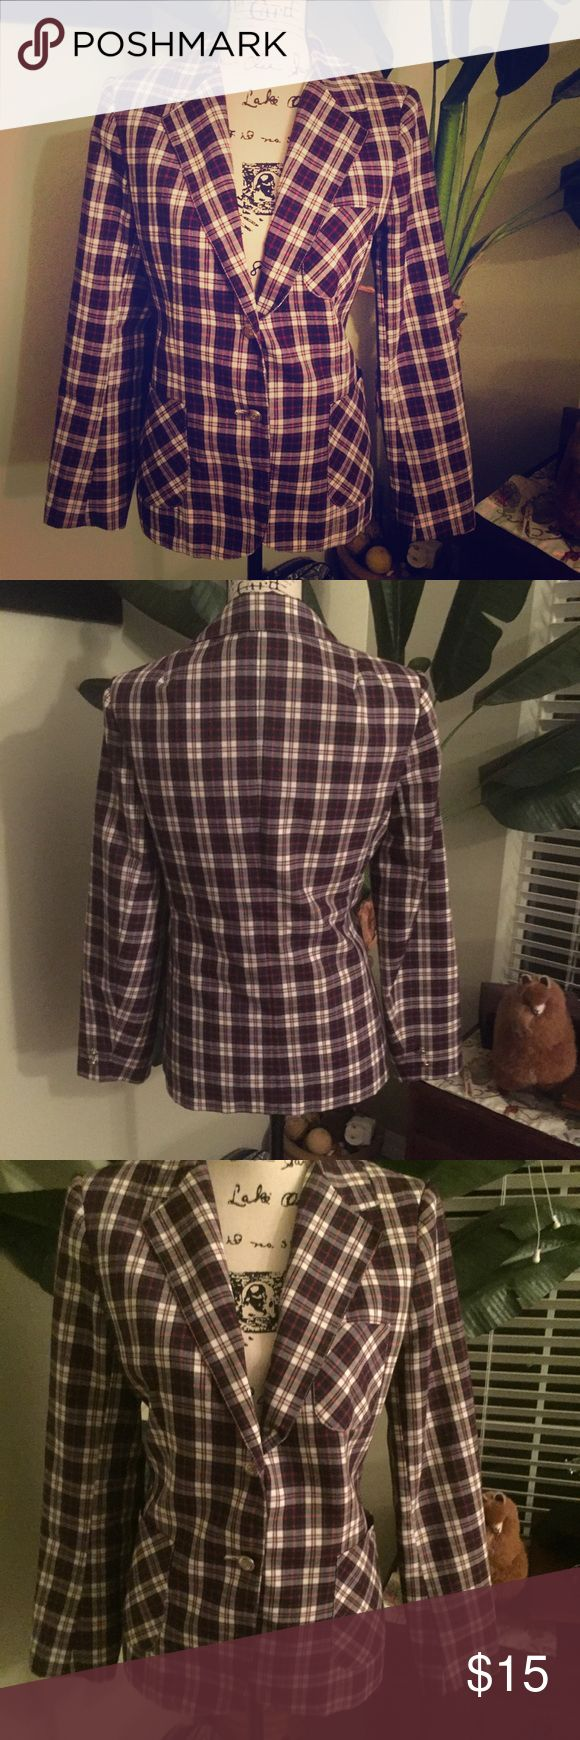 Vintage Plaid Barclay Square Prep School Blazer Vintage Plaid Barclay Square Prep School Blazer. Then Sz 10 Fits a 6/8 now. Light weight and fully lined. Good condition Authentic Original Vintage Style Jackets & Coats Blazers